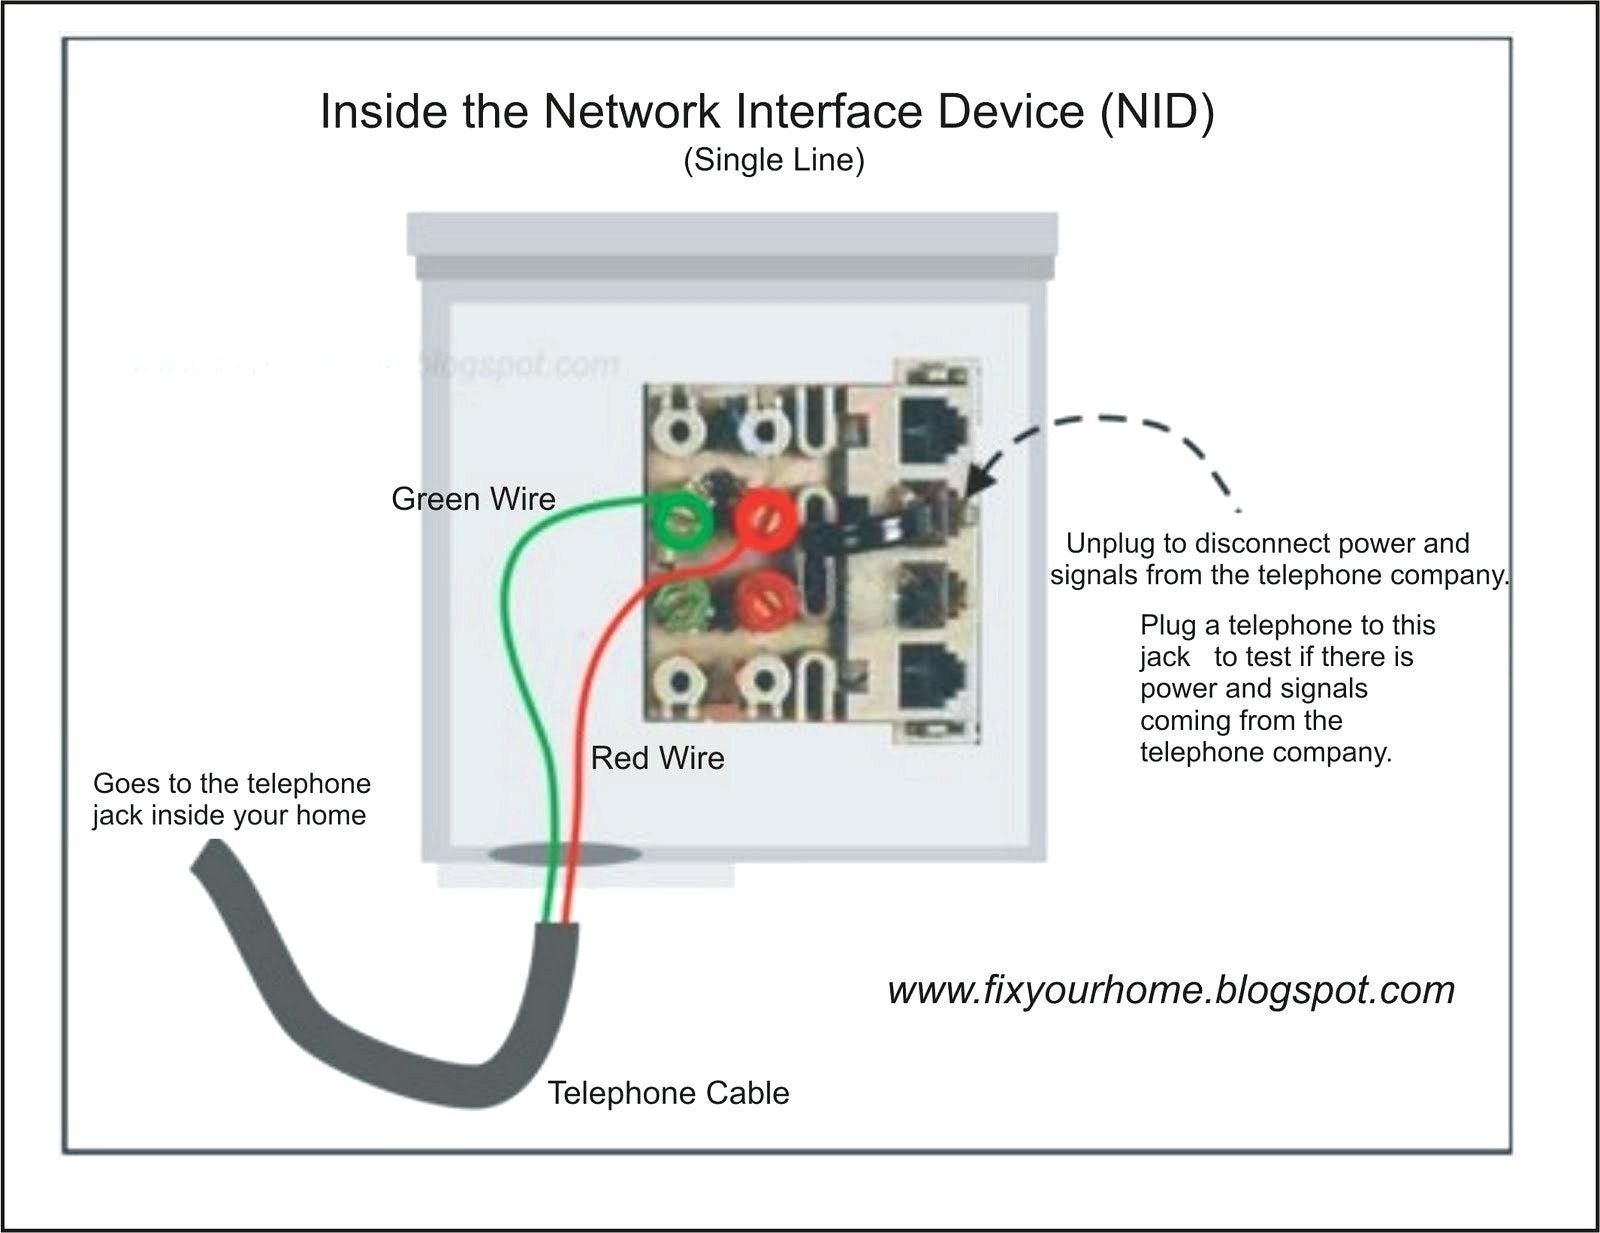 Elegant Wiring Diagram Nz Diagrams Digramssample Diagramimages Wiringdiagramsample Wiringdiagram Check More At H Wireless Router Phone Jack Telephone Jack